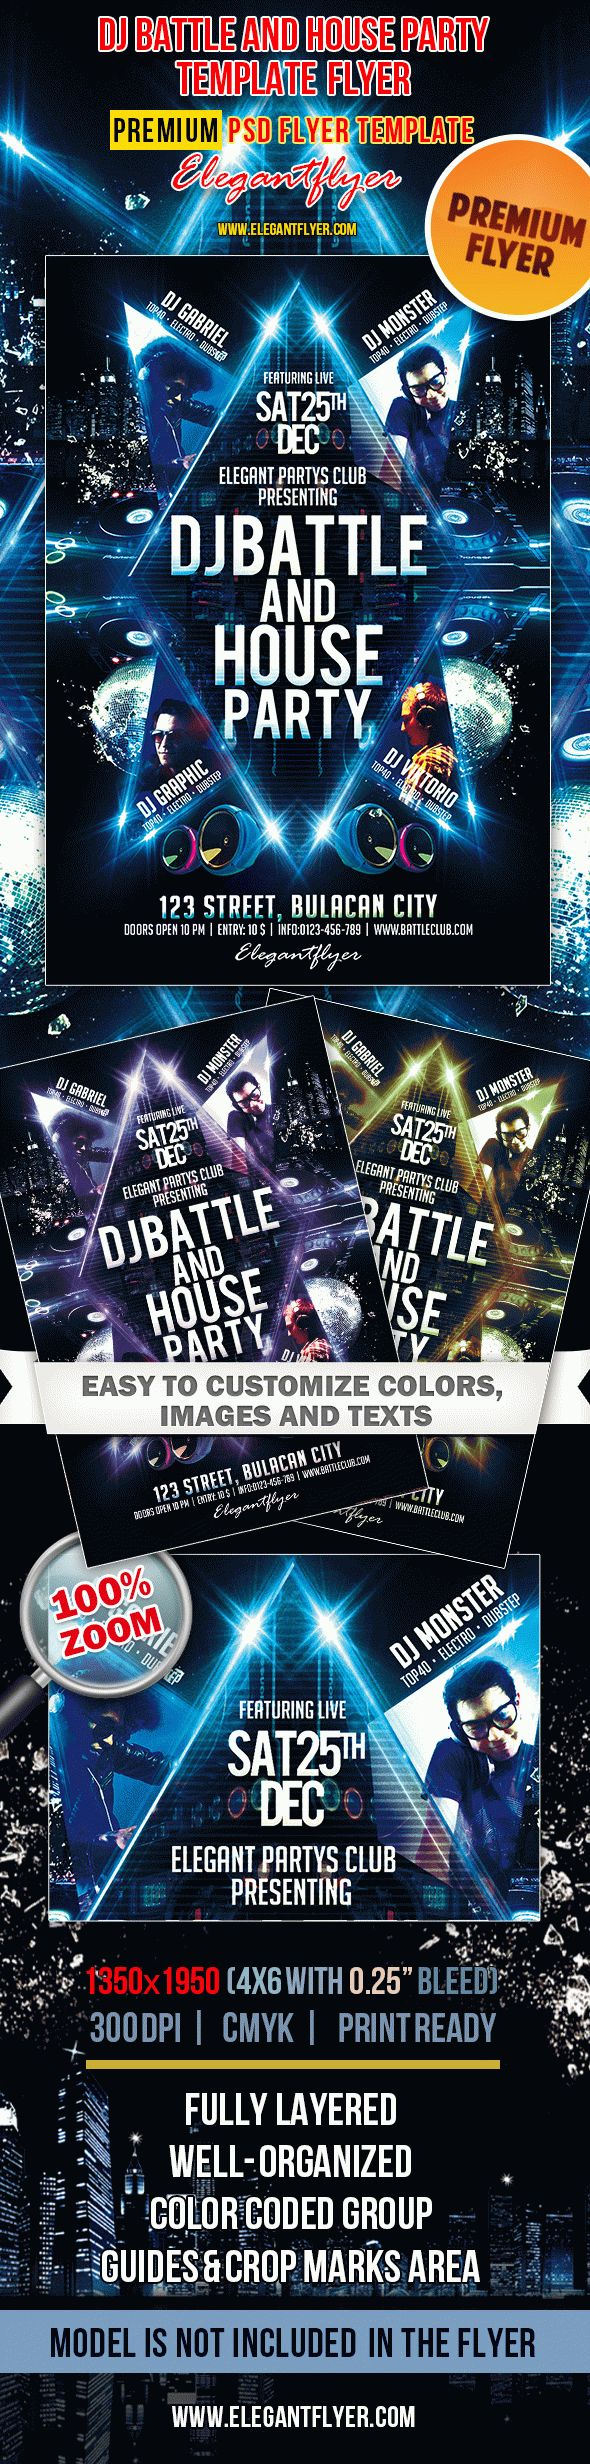 Dj Battle and House Party – Premium Club flyer PSD Template